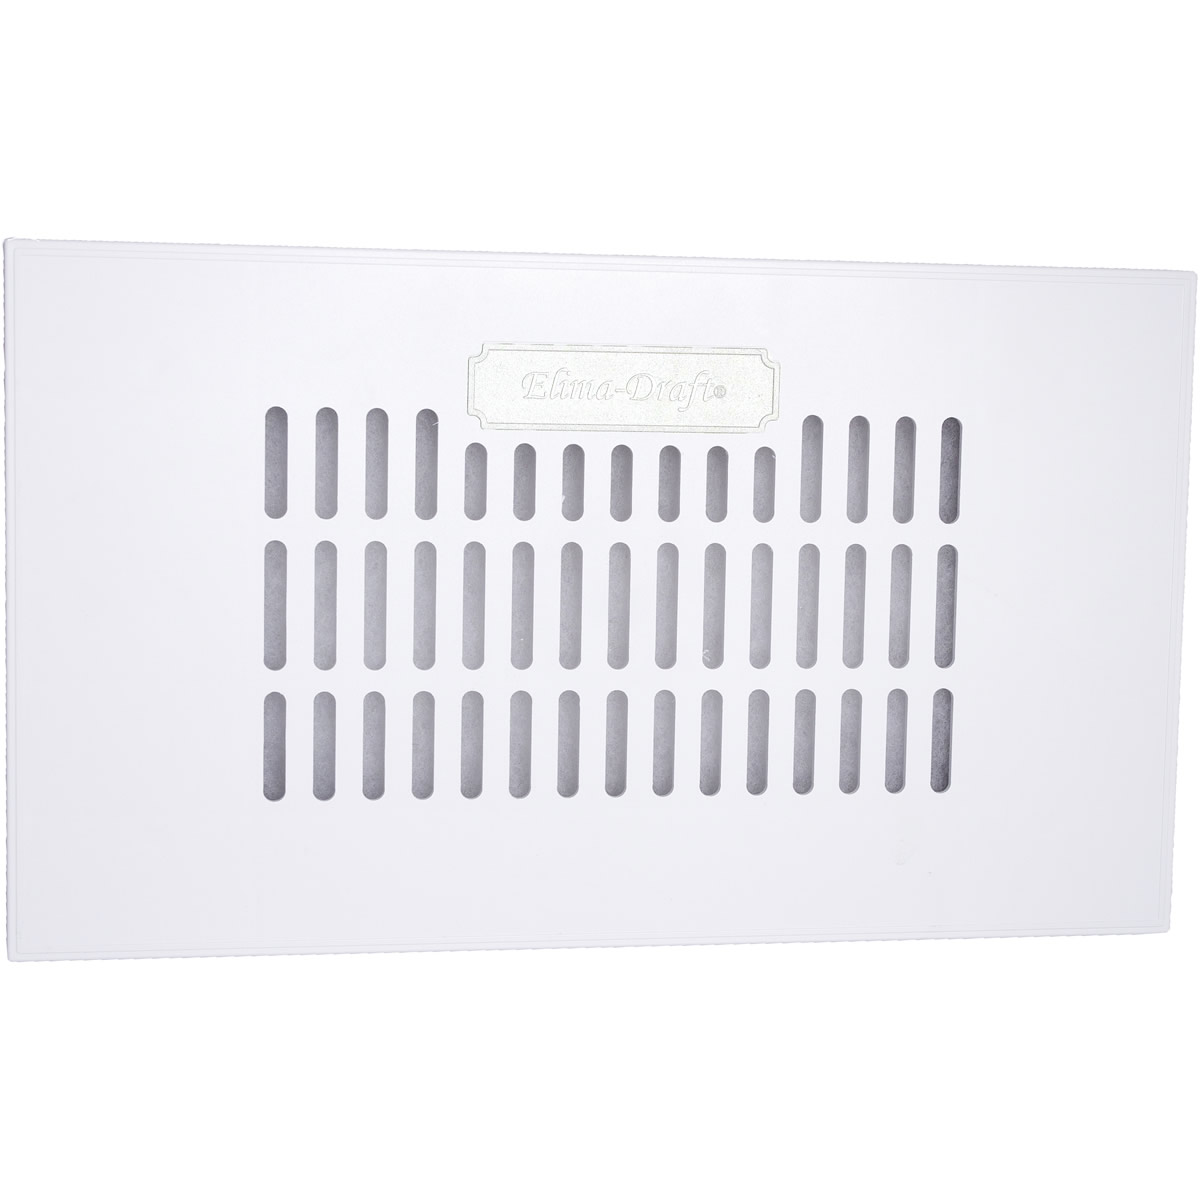 #615774 Elima Draft Model# ELMDFTRECFIL3419 4 In 1 Allergen  Brand New 6991 Vent Register Covers images with 1200x1200 px on helpvideos.info - Air Conditioners, Air Coolers and more